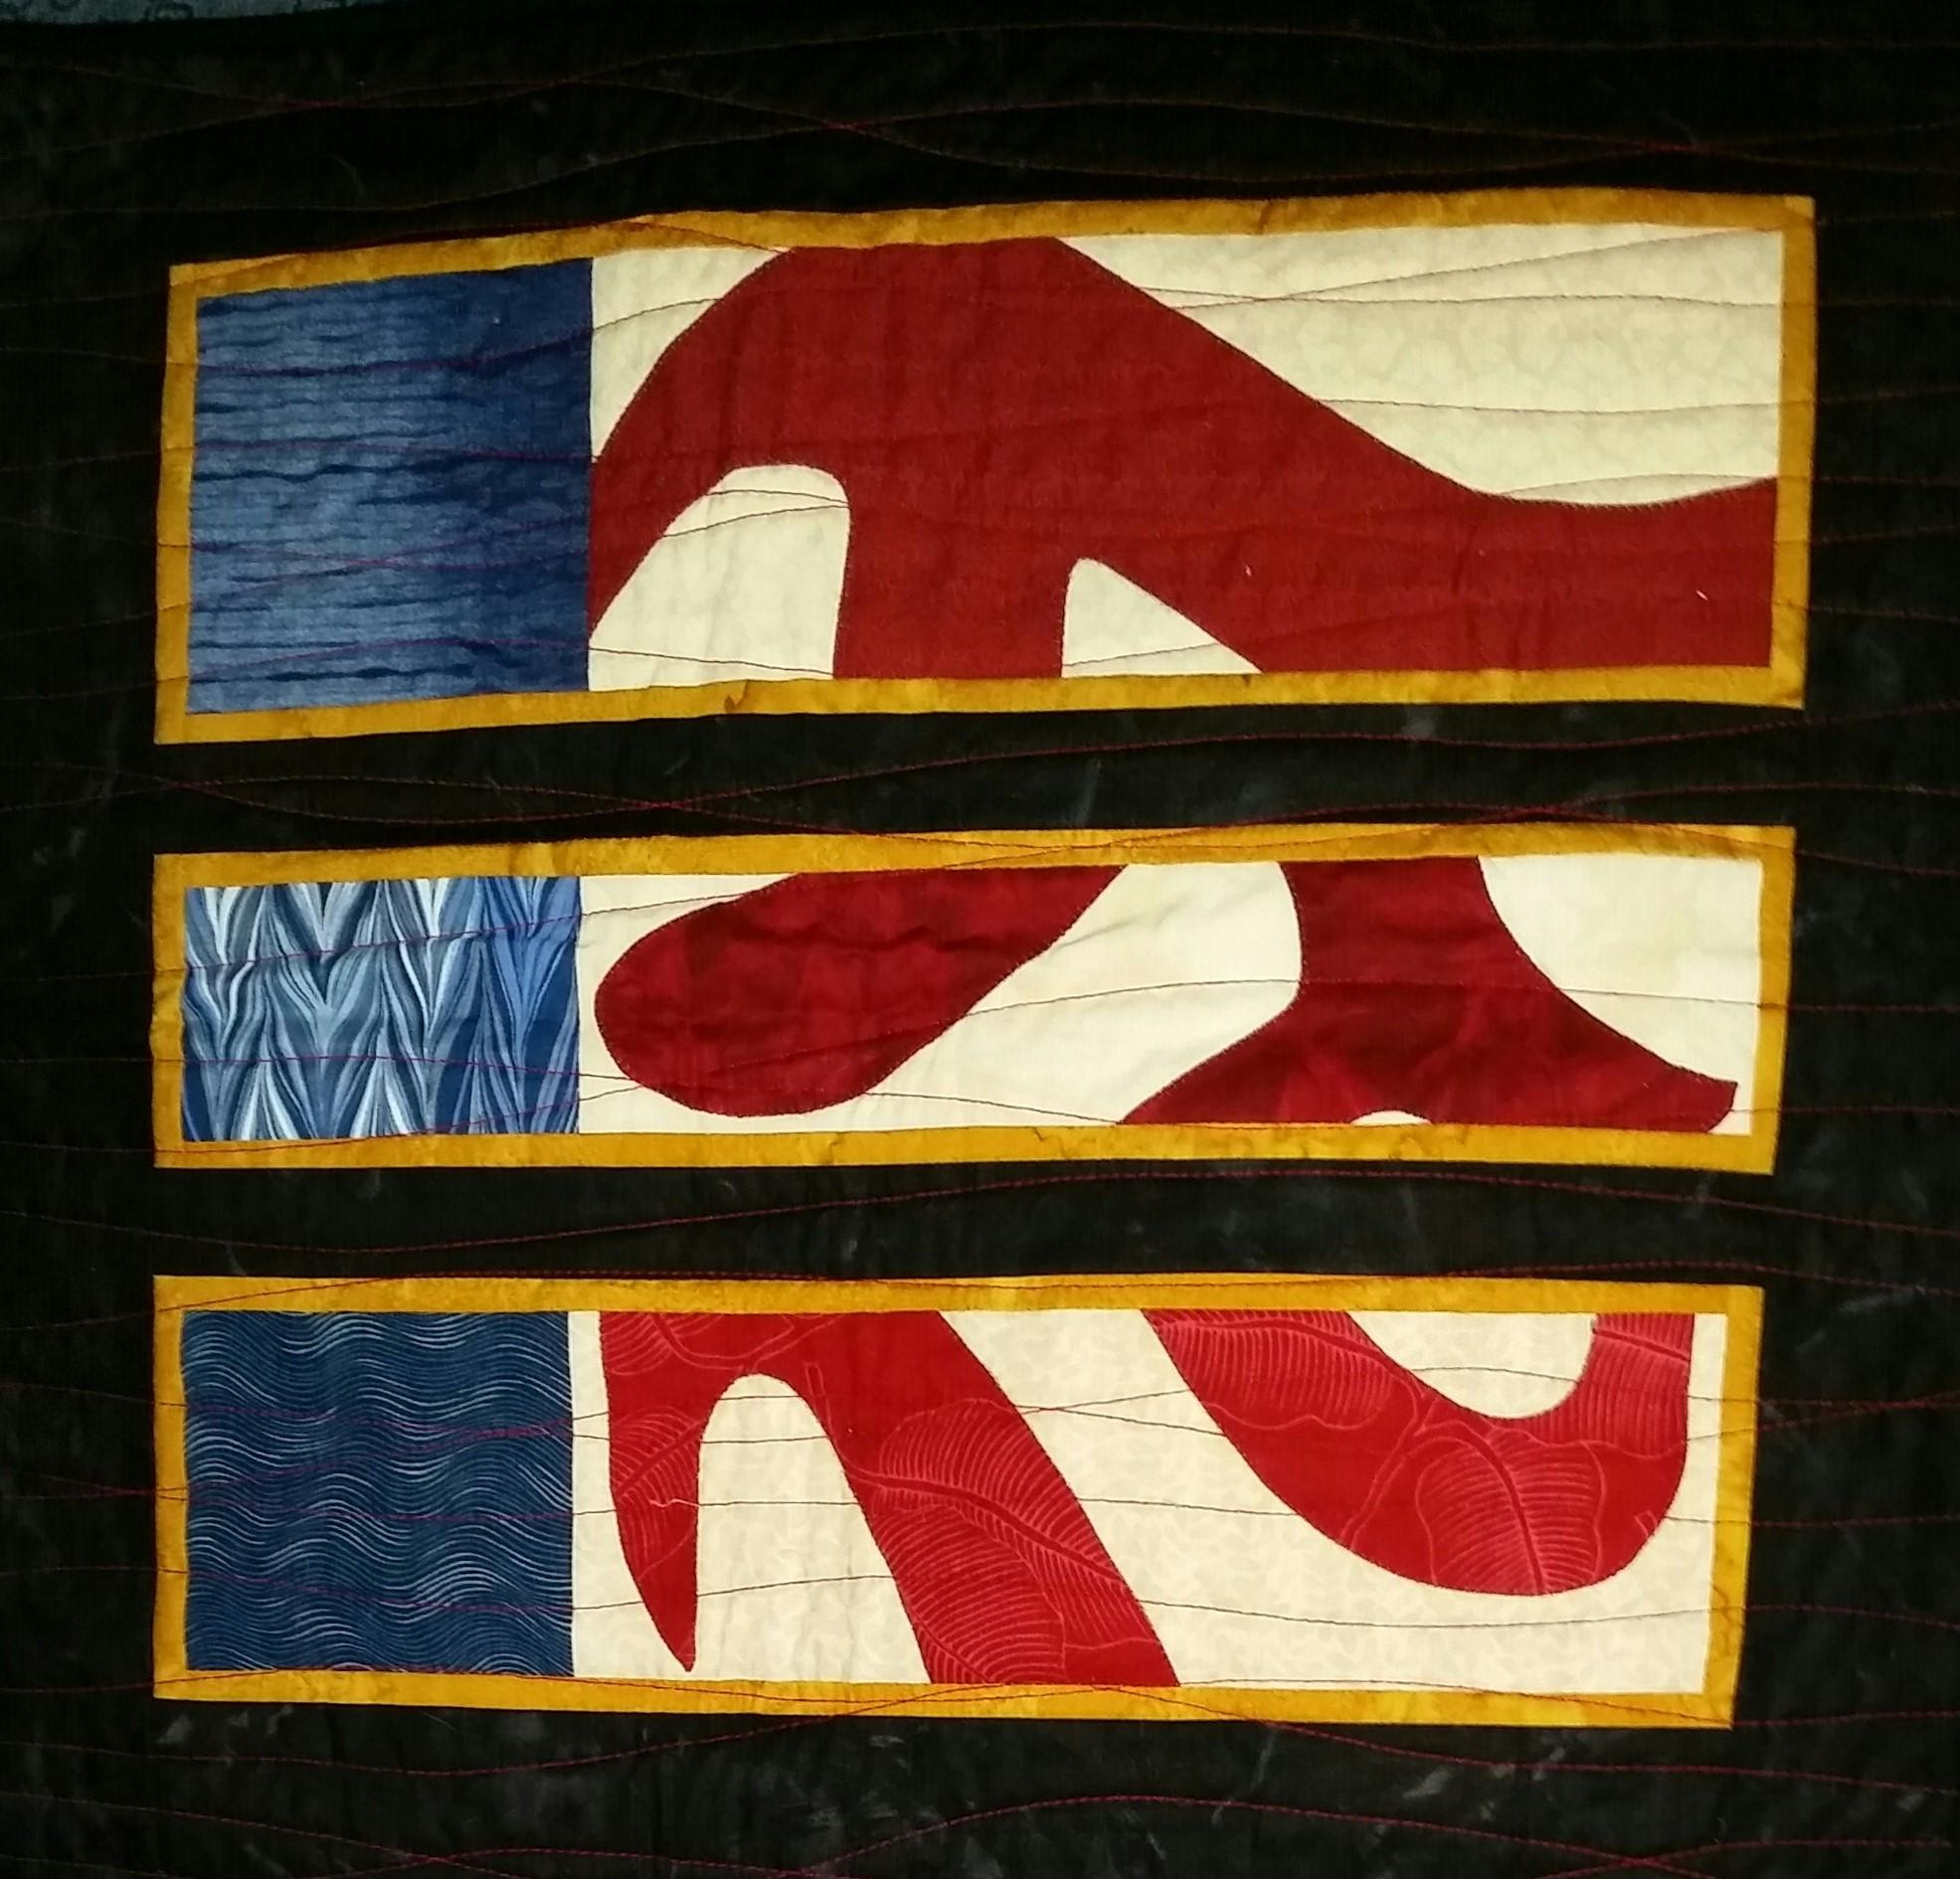 American Pi quilt by Chardel Blaine